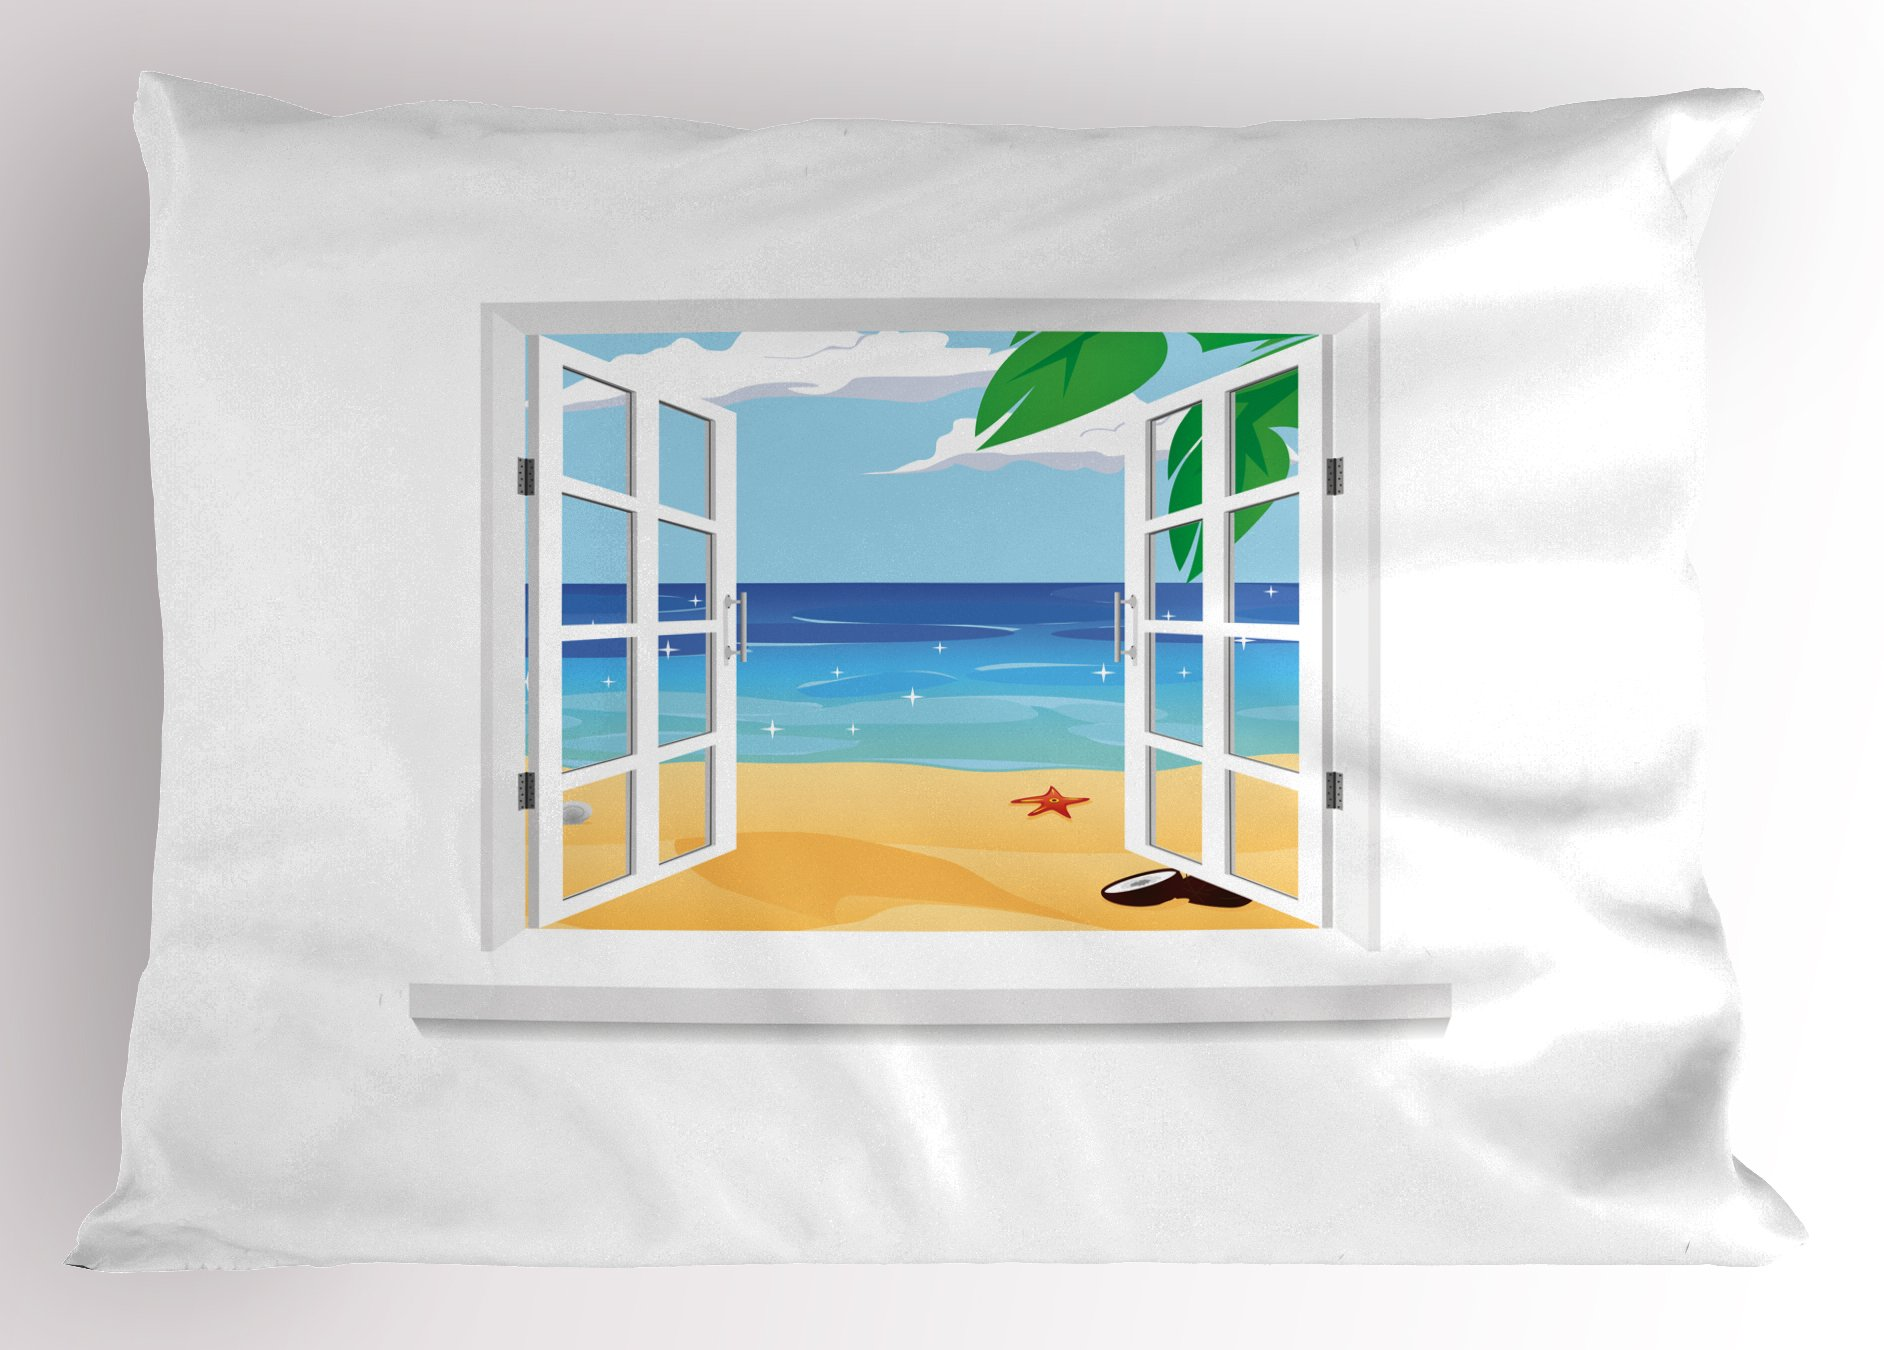 Ambesonne Beach Pillow Sham, View from Window Ocean with Coconut Leaves Starfish Cartoon Illustration, Decorative Standard Size Printed Pillowcase, 26 X 20 inches, Blue Sand Brown White